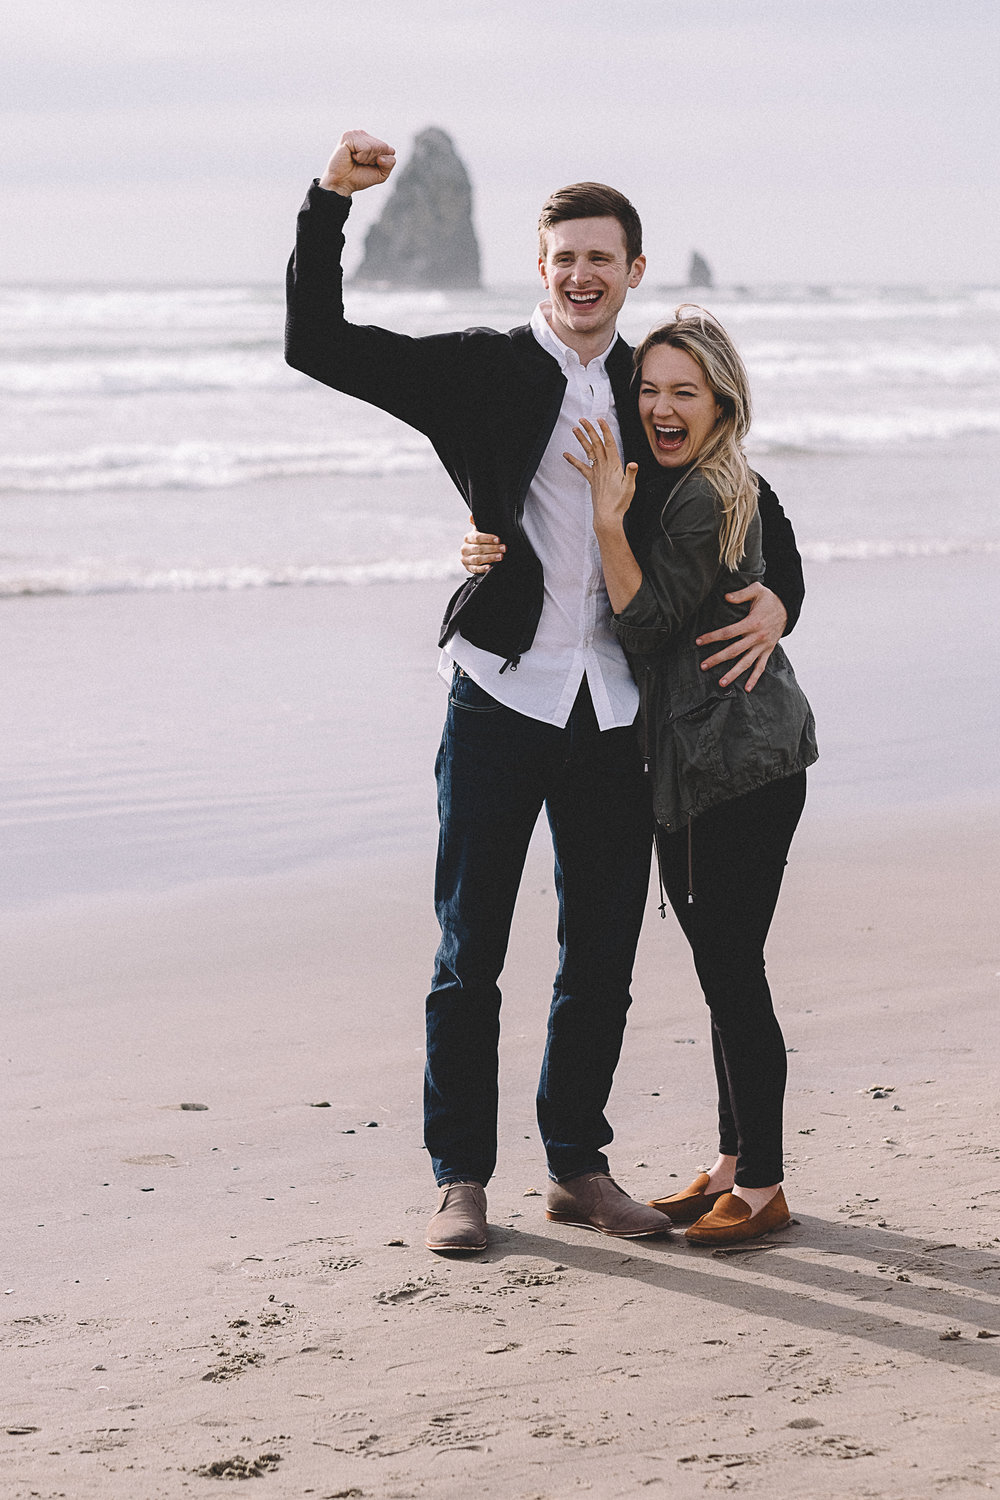 Cannon Beach Engagement Photography-28.jpg